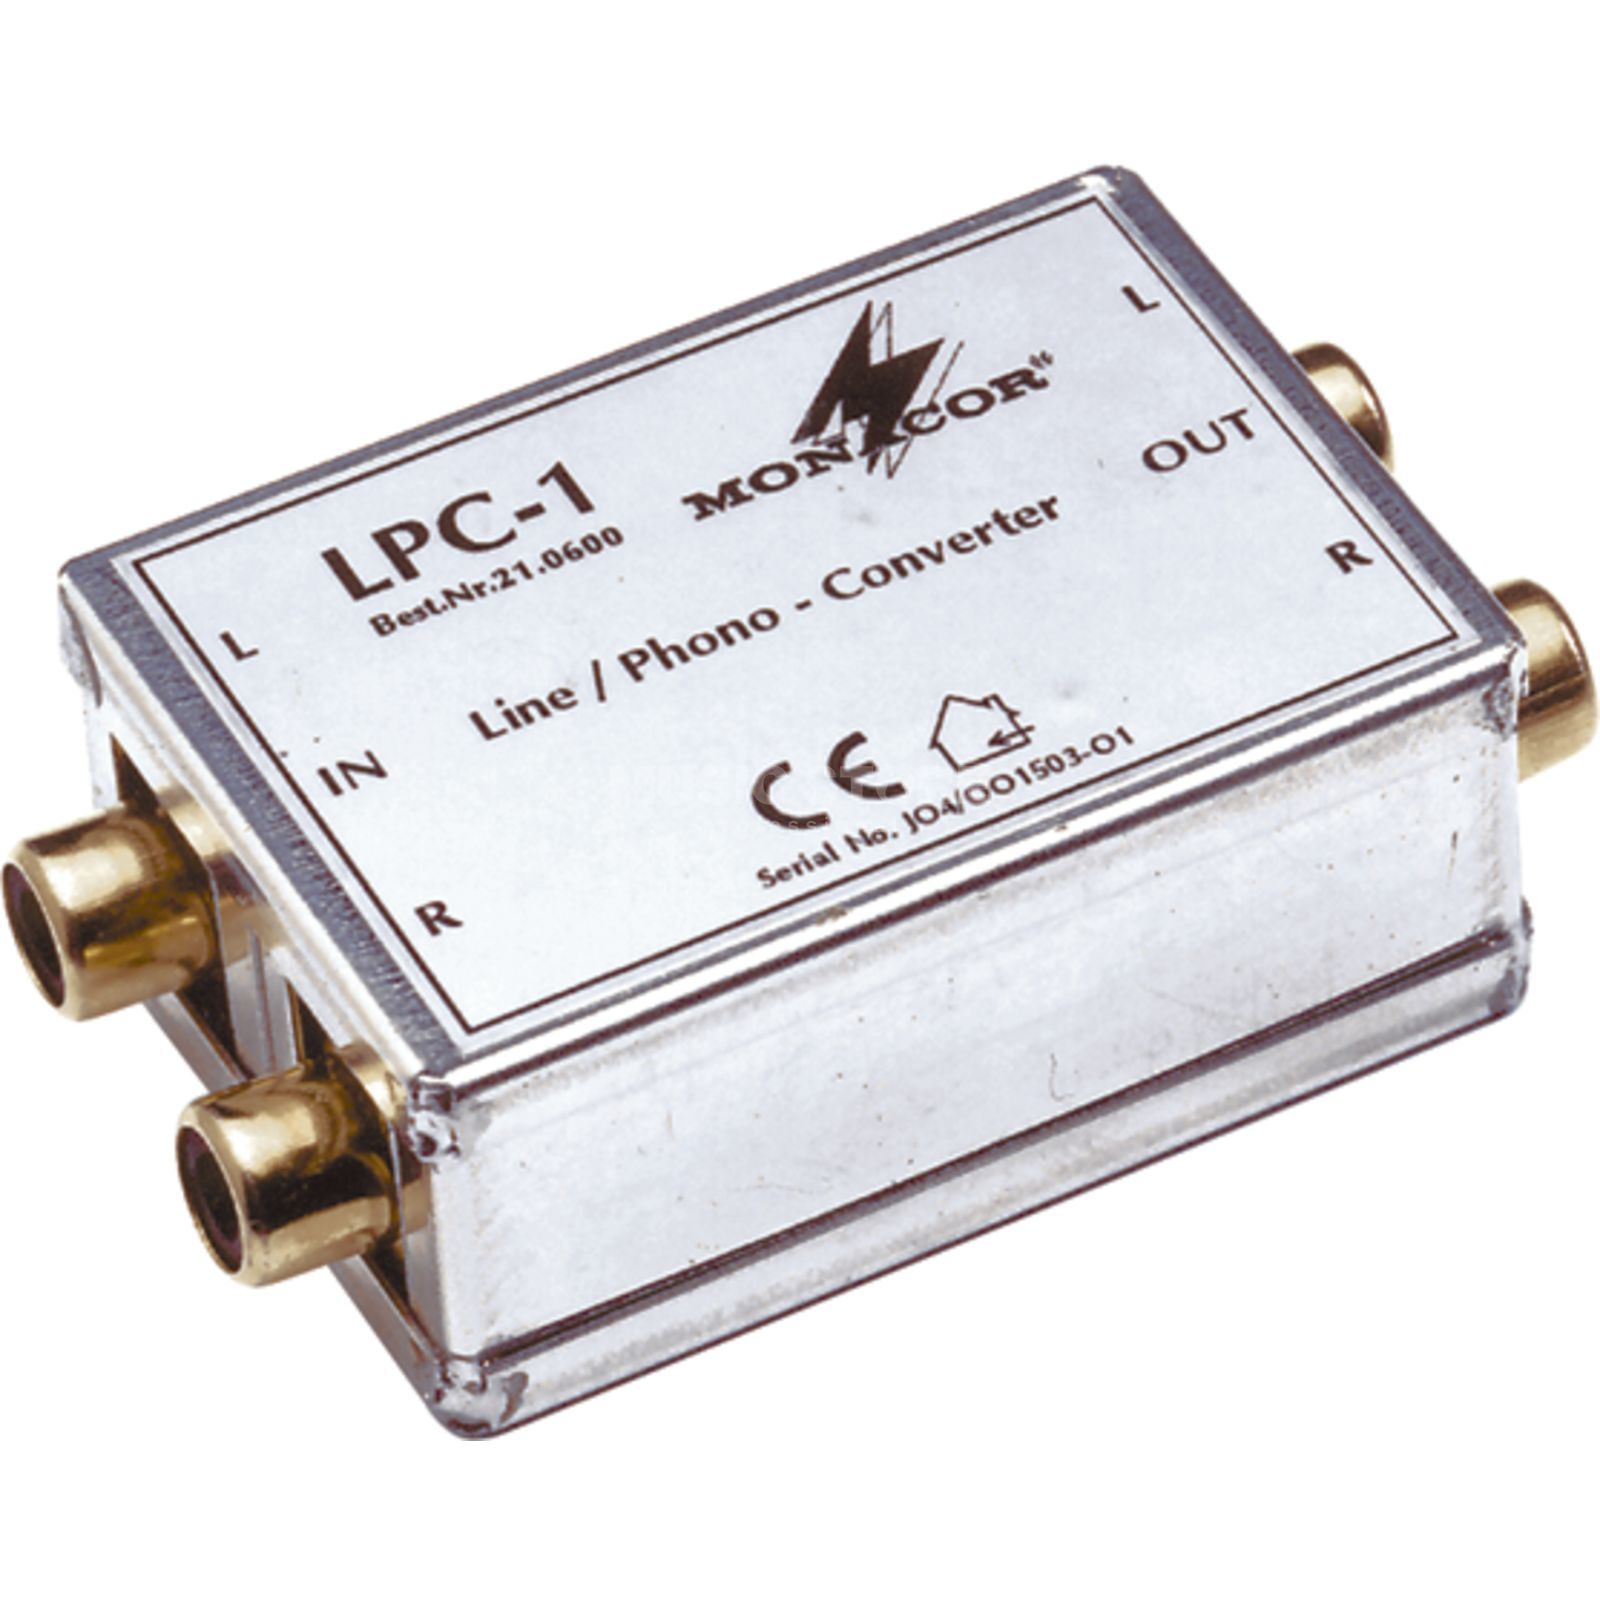 Monacor LPC-1 / Line- Phono converter cinch aansluiting Productafbeelding